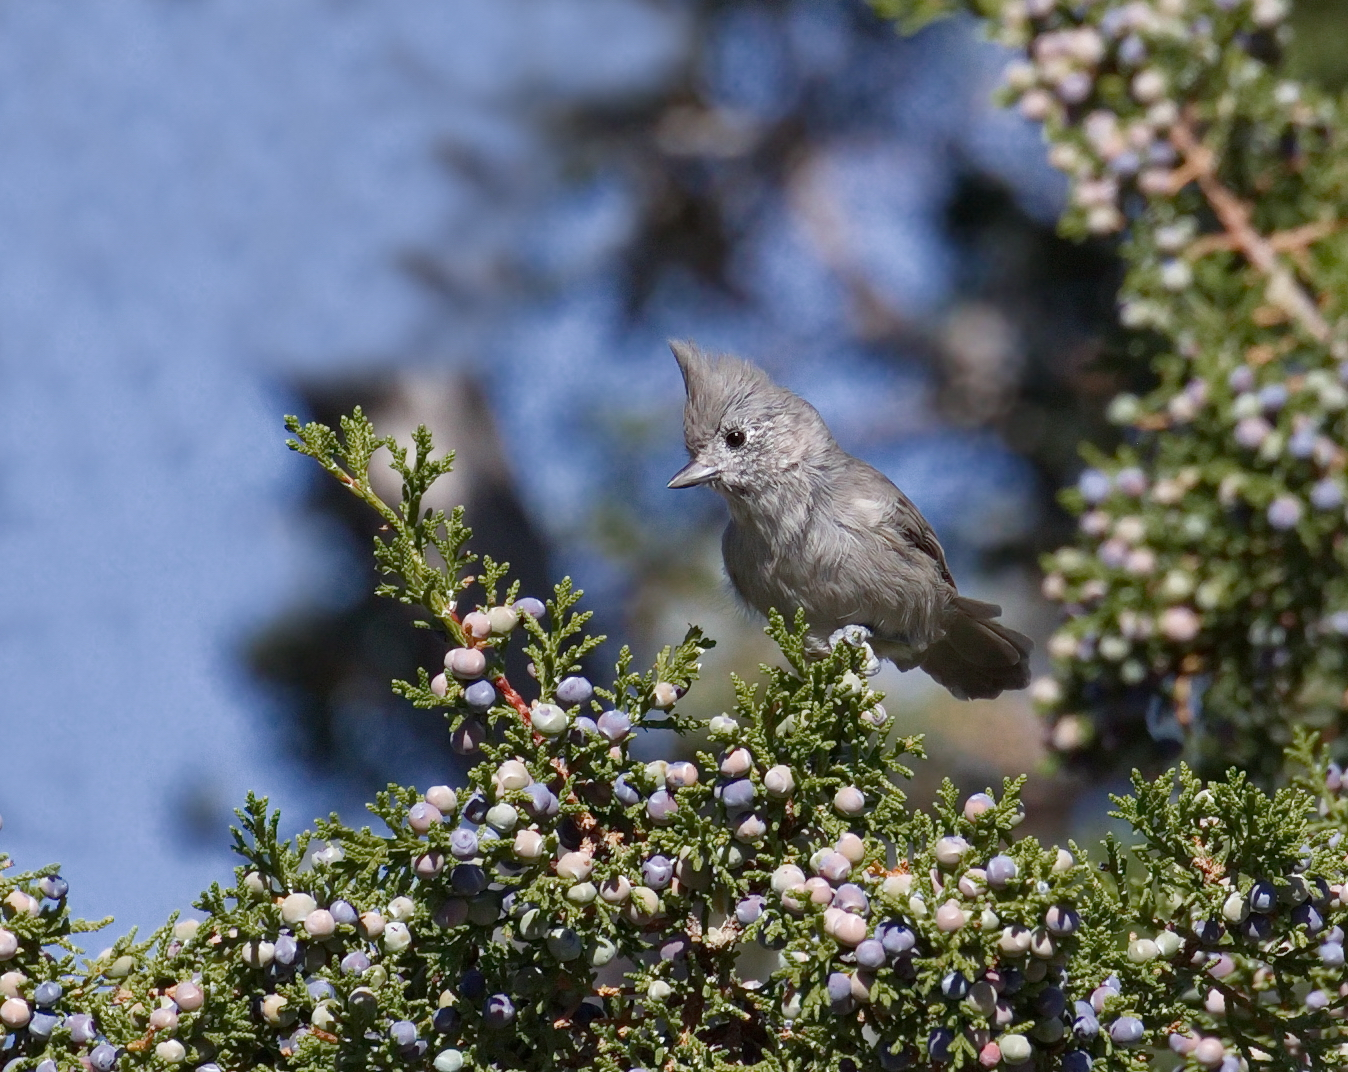 Juniper Titmouse